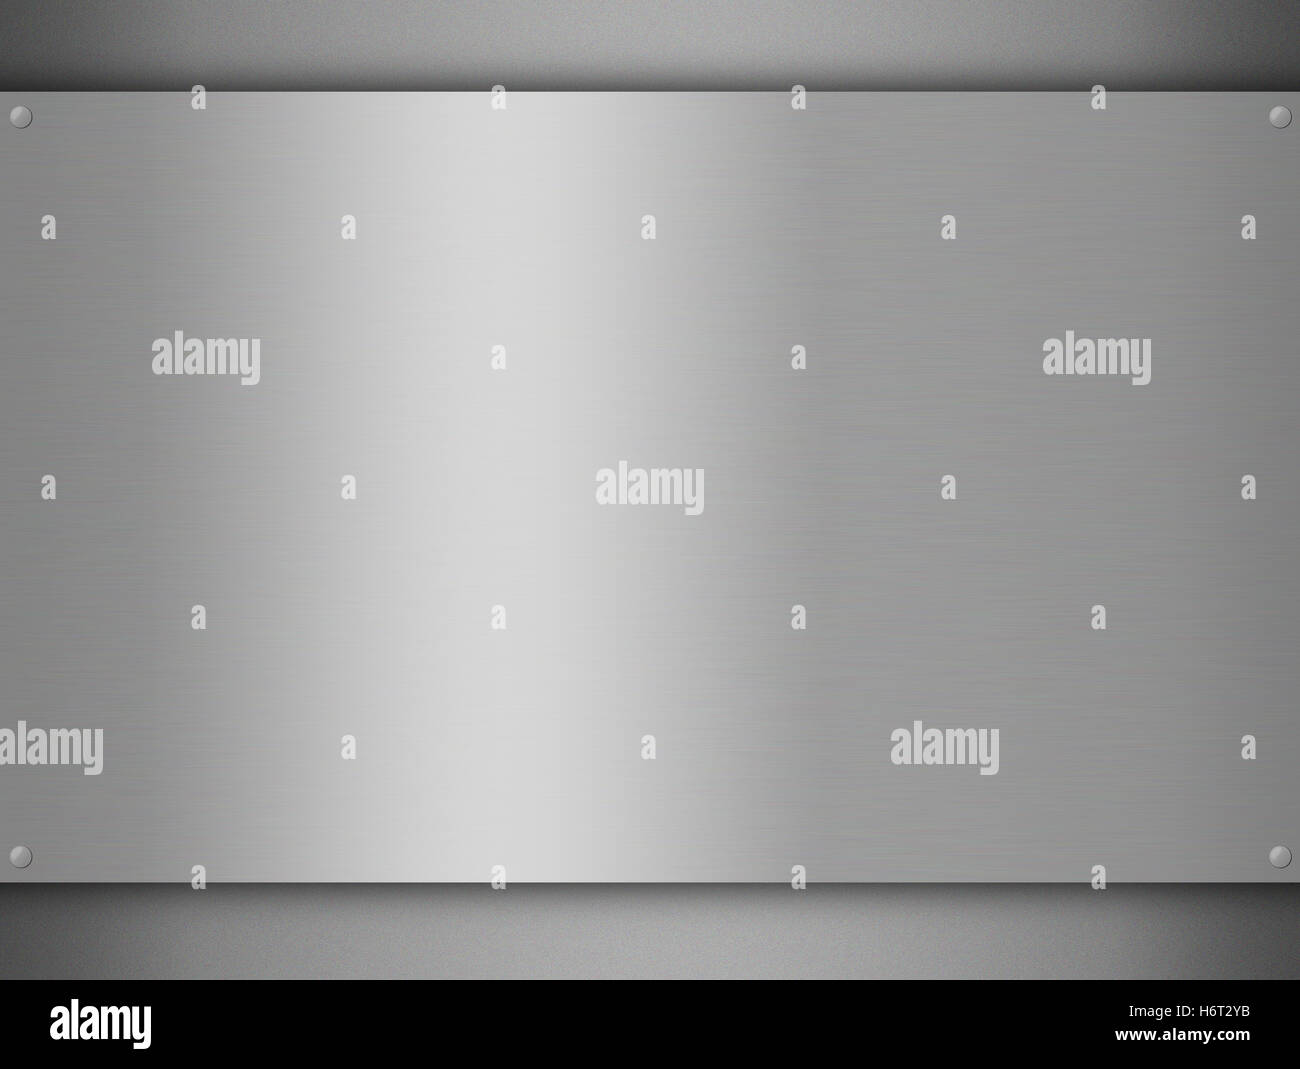 steel metal copy imitation cliché template falsification plagiarism aluminum aluminium metallic page - Stock Image